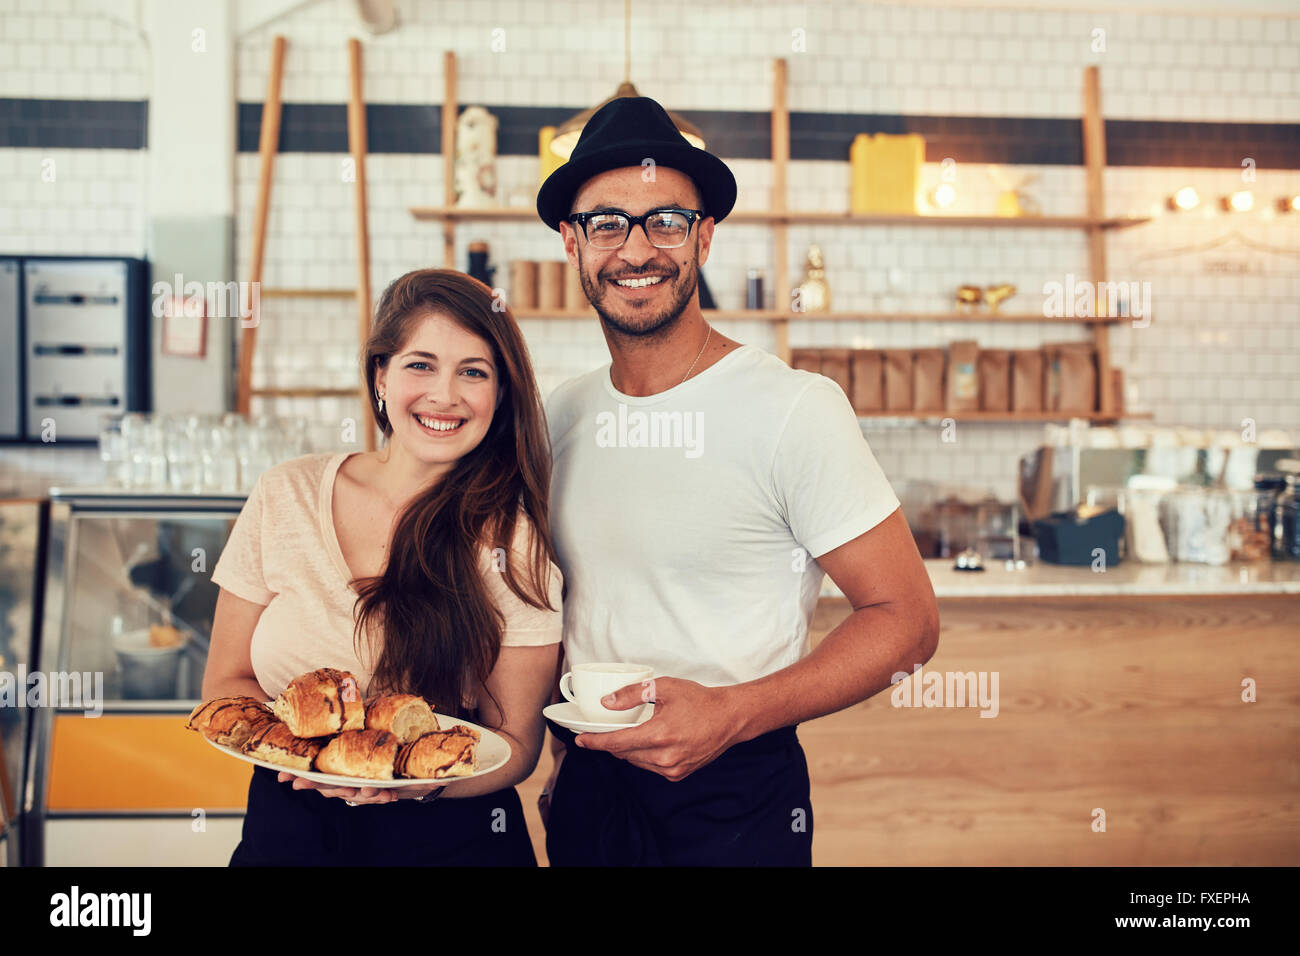 Portrait of happy young man and woman with food and cafe at coffee shop. Couple having food in a restaurant. - Stock Image